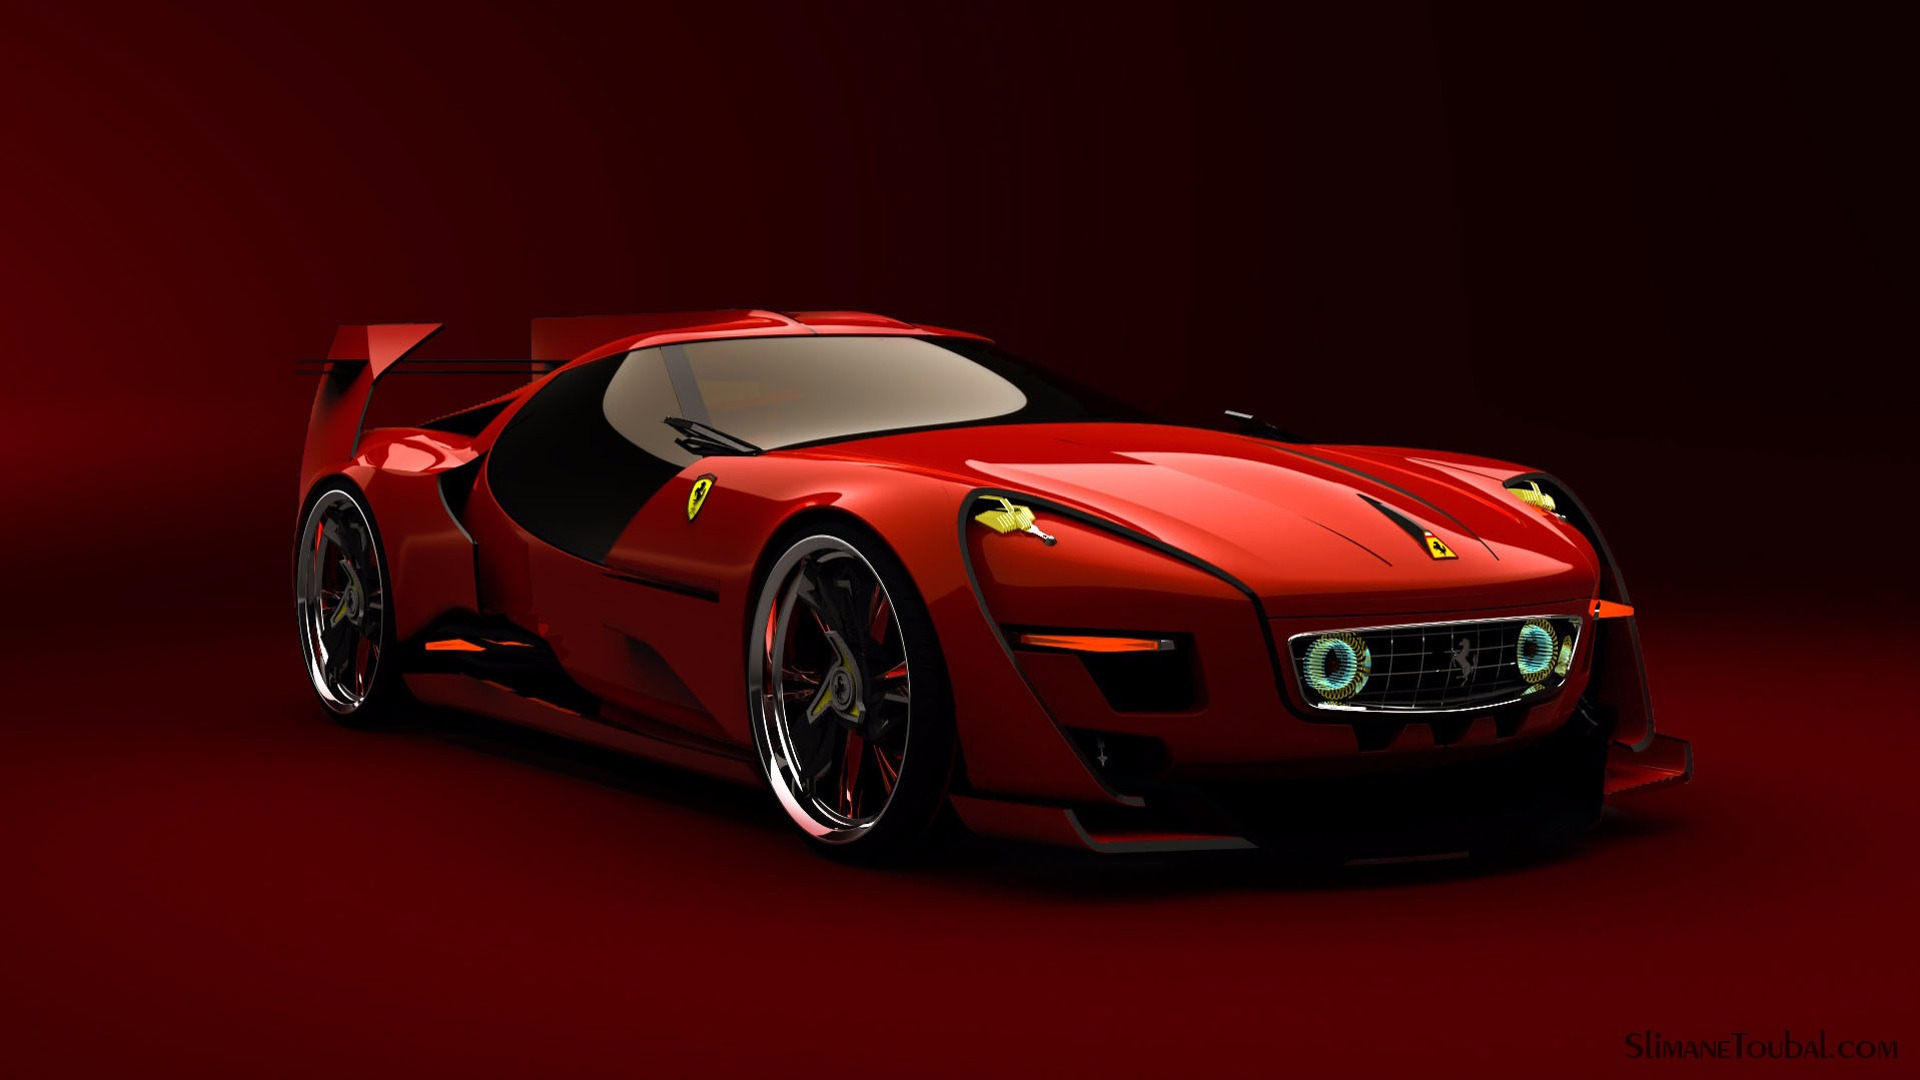 This Fan Made Ferrari Concept Hits All The Right Retro Buttons